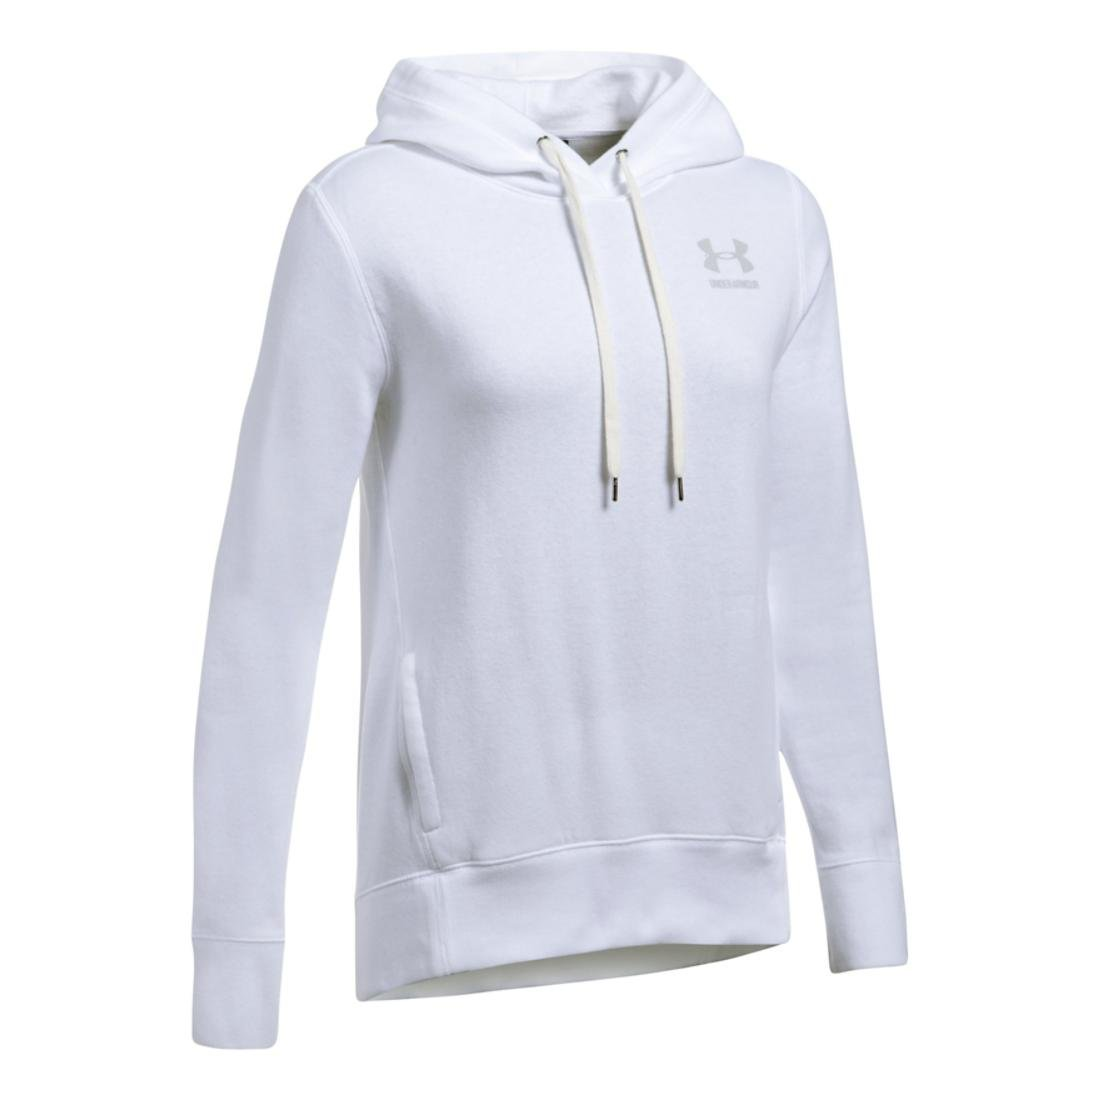 Under Armour Women's Favorite Fleece Big Logo Hoodie Under Armour Apparel 1302045